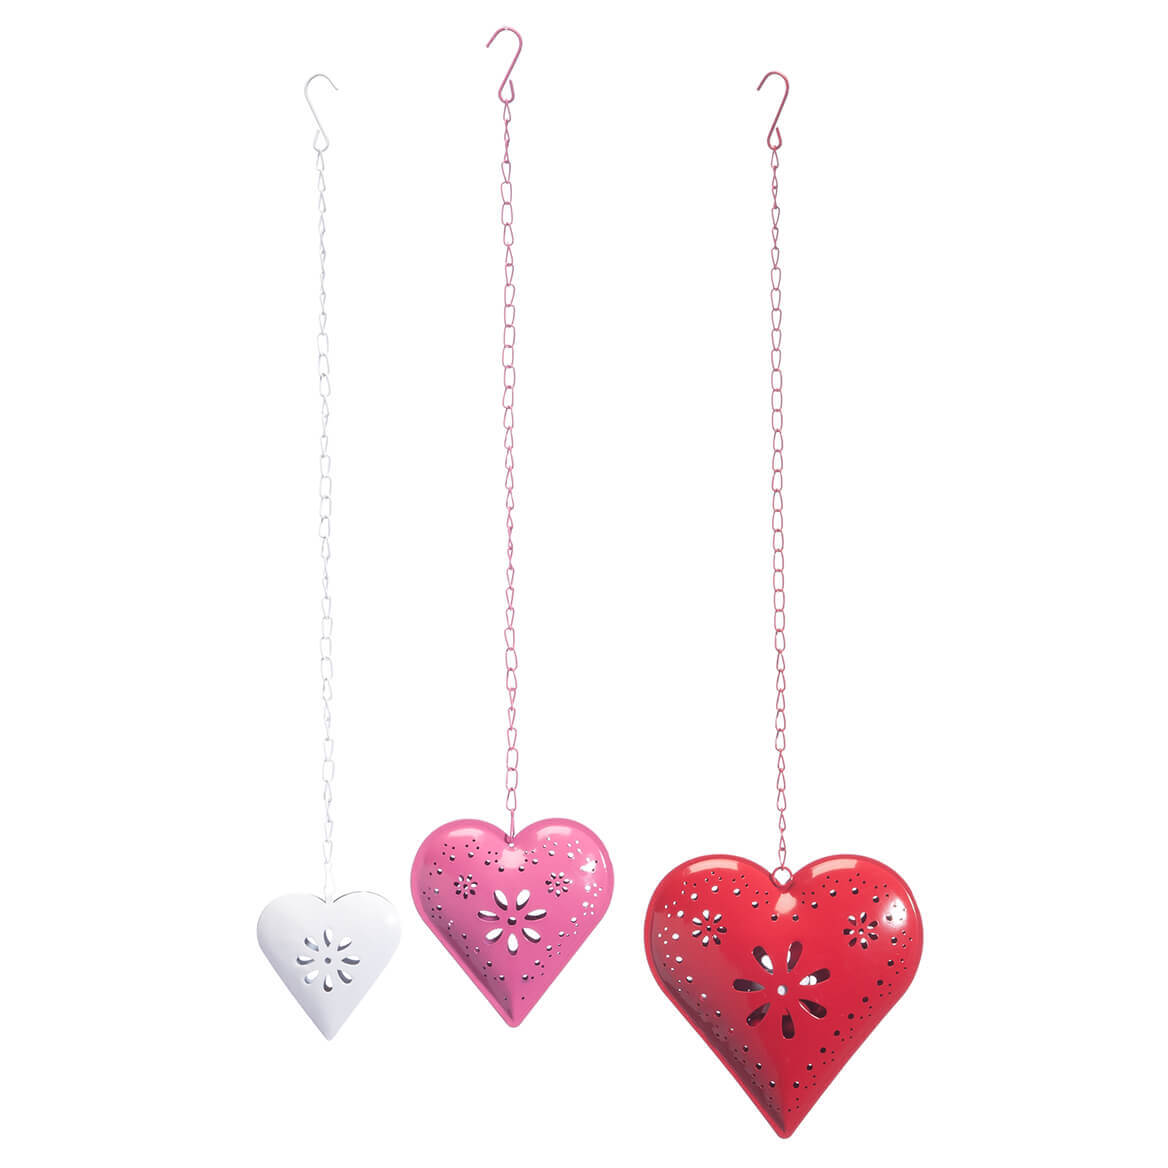 Metal Hanging Hearts, Set of 3